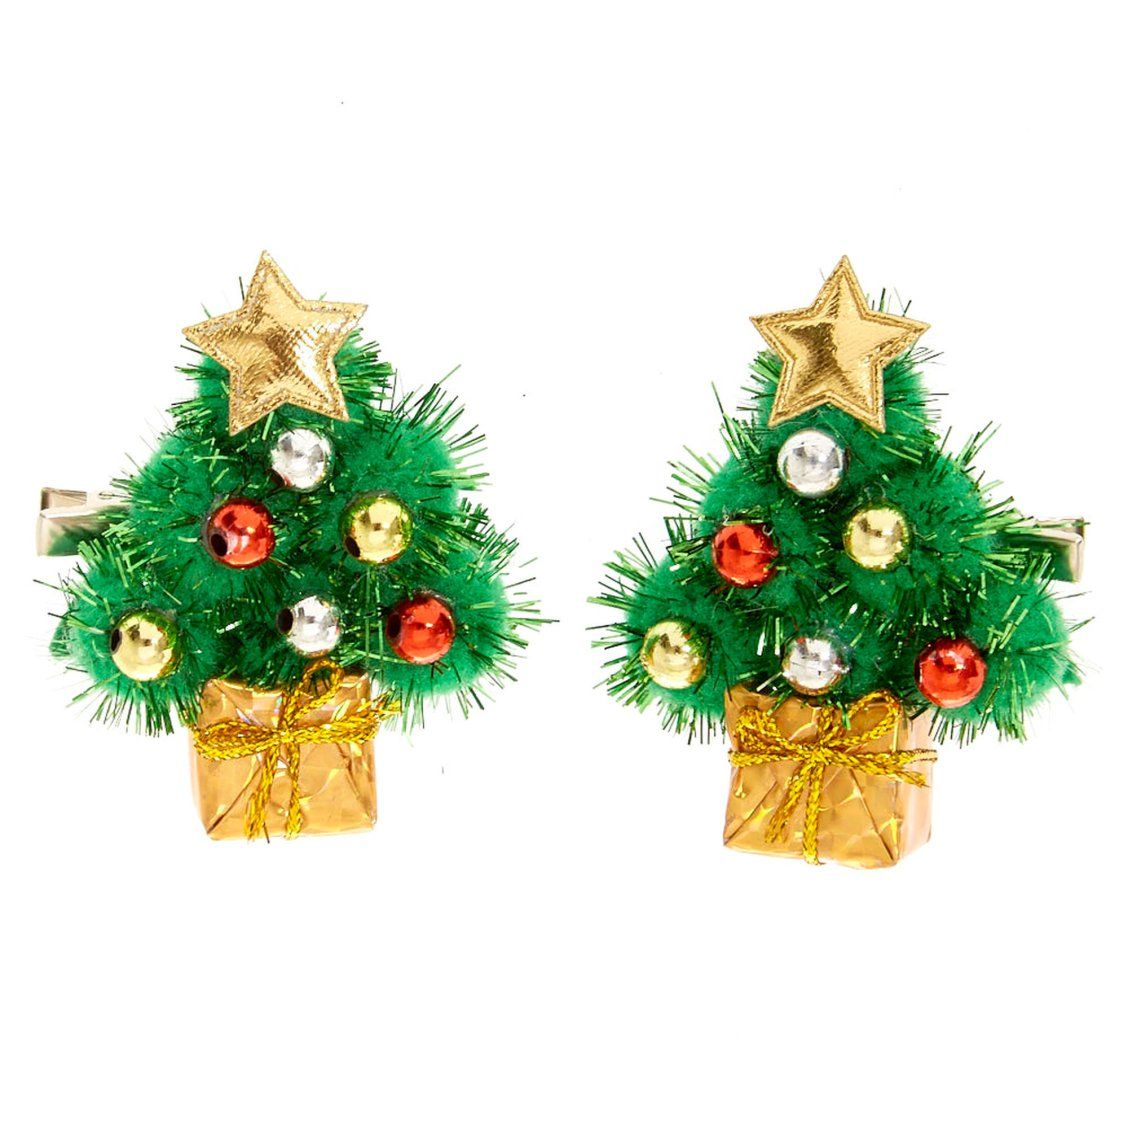 Tinsel Christmas Tree Hair Clips Get Into The Holiday Spirit With Our Tinsel Christmas T Tinsel Christmas Tree Christmas Tree Hair Christmas Tree Decorations